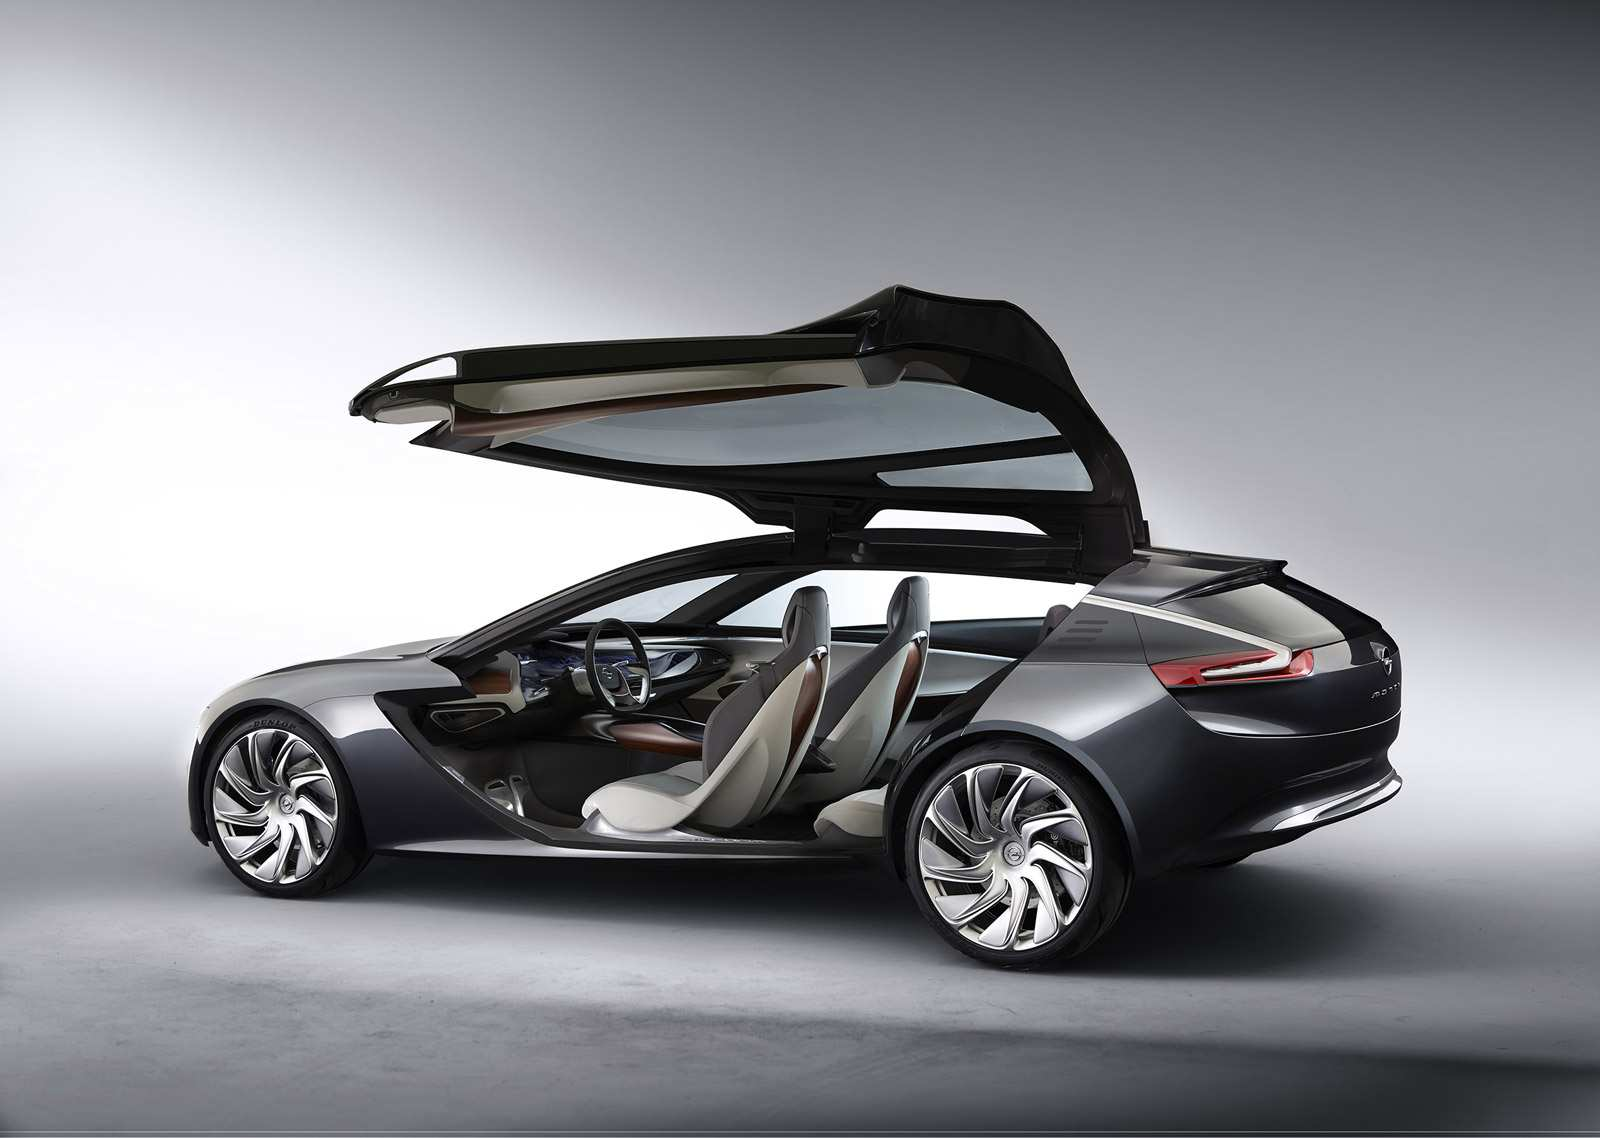 22 Concept of Opel Monza 2019 Research New by Opel Monza 2019